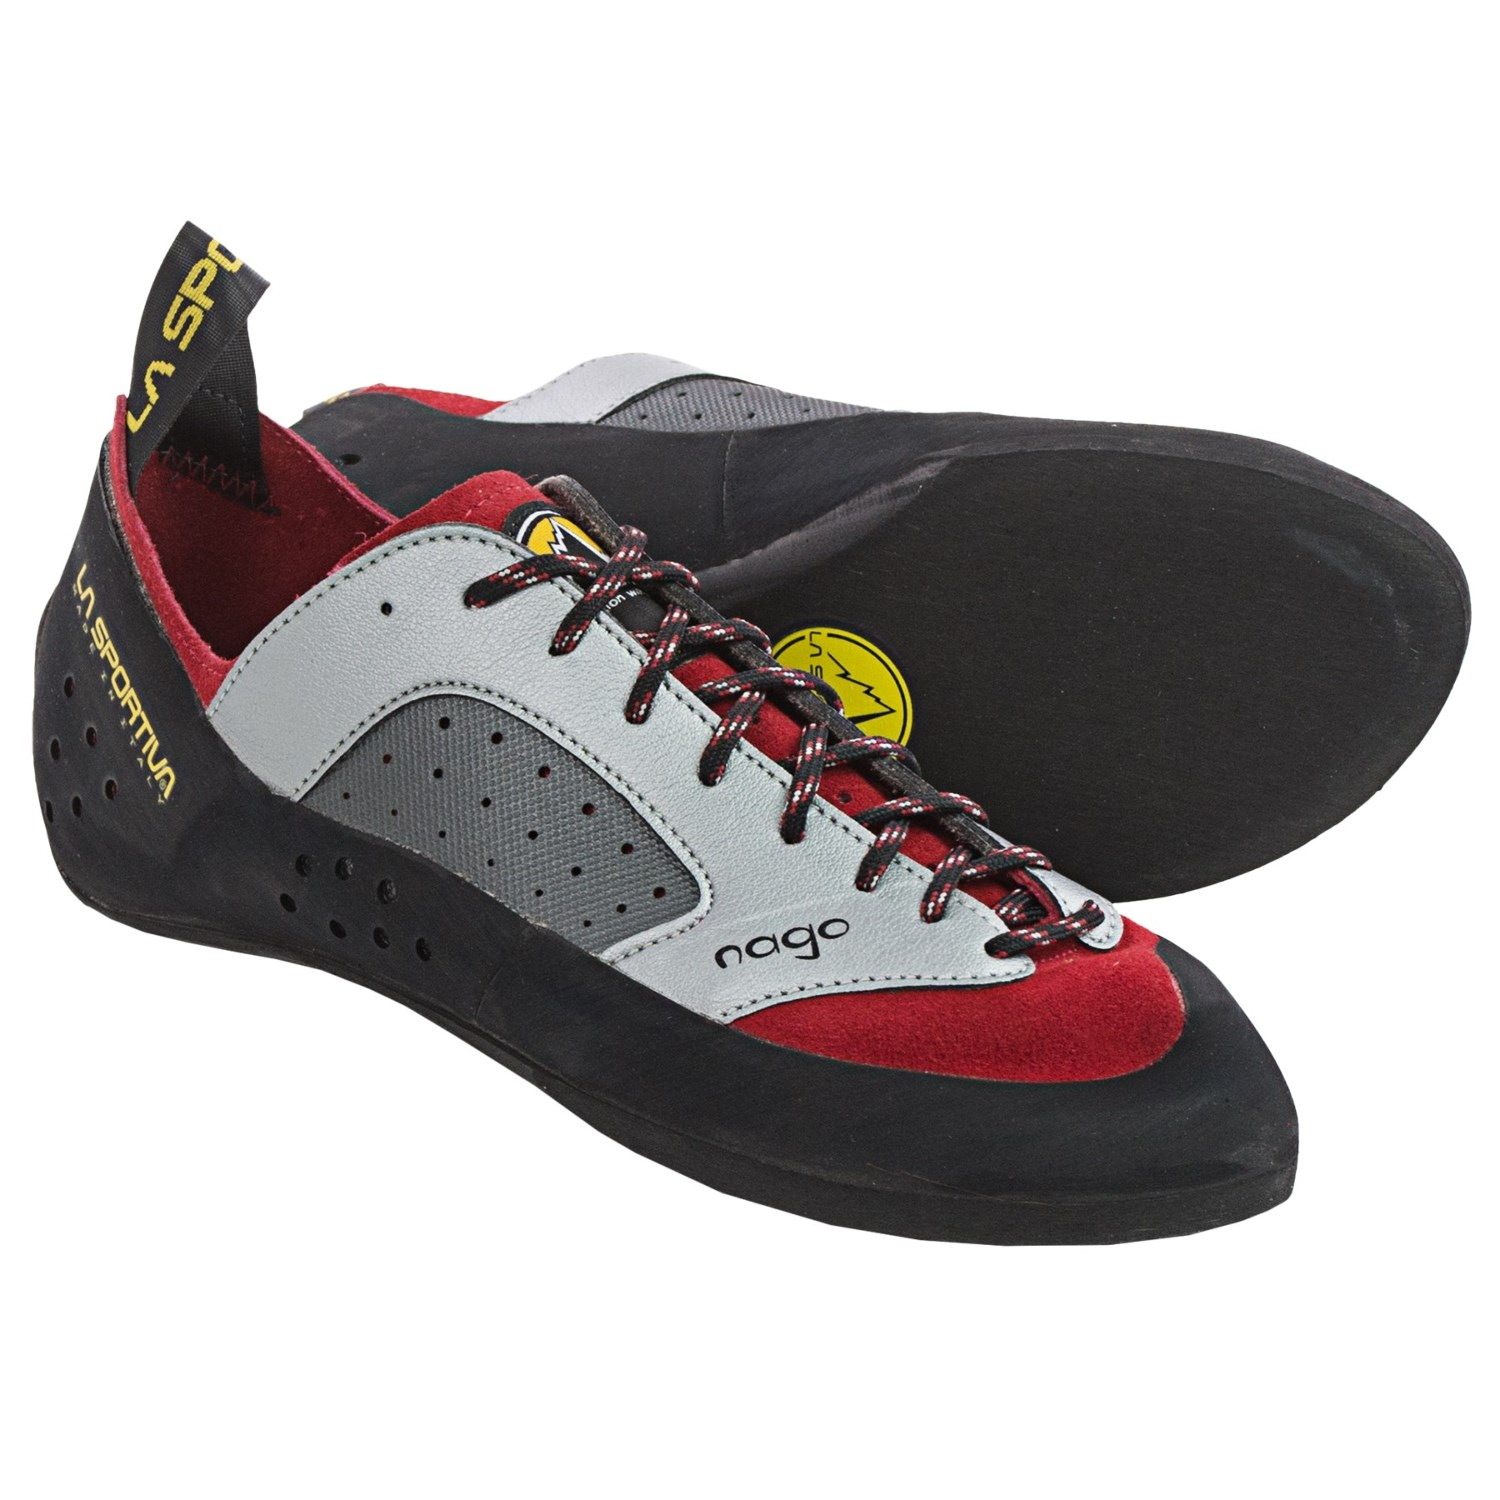 What Size To Get When Buying Track Shoes